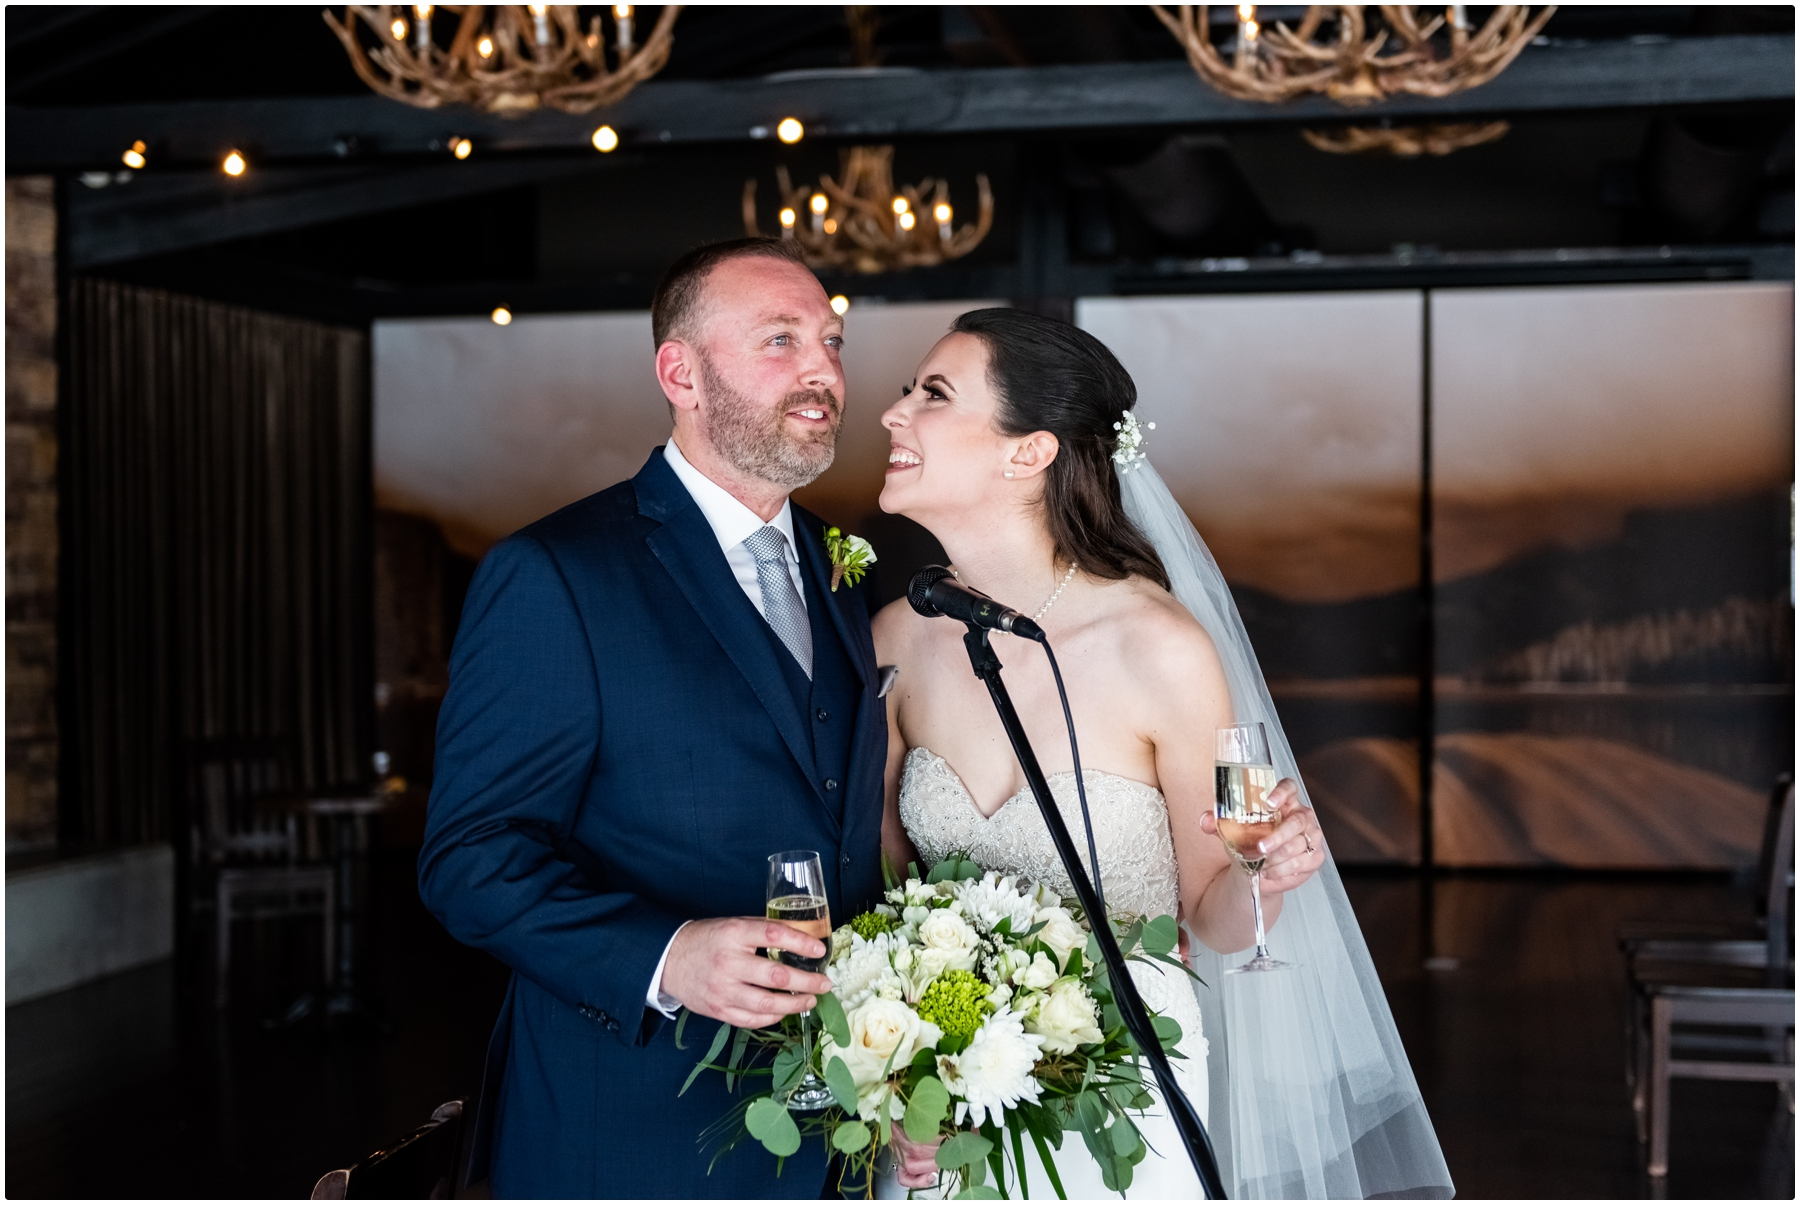 Calgary AB Wedding Ceremony Photographer - The Lake House Restaurant